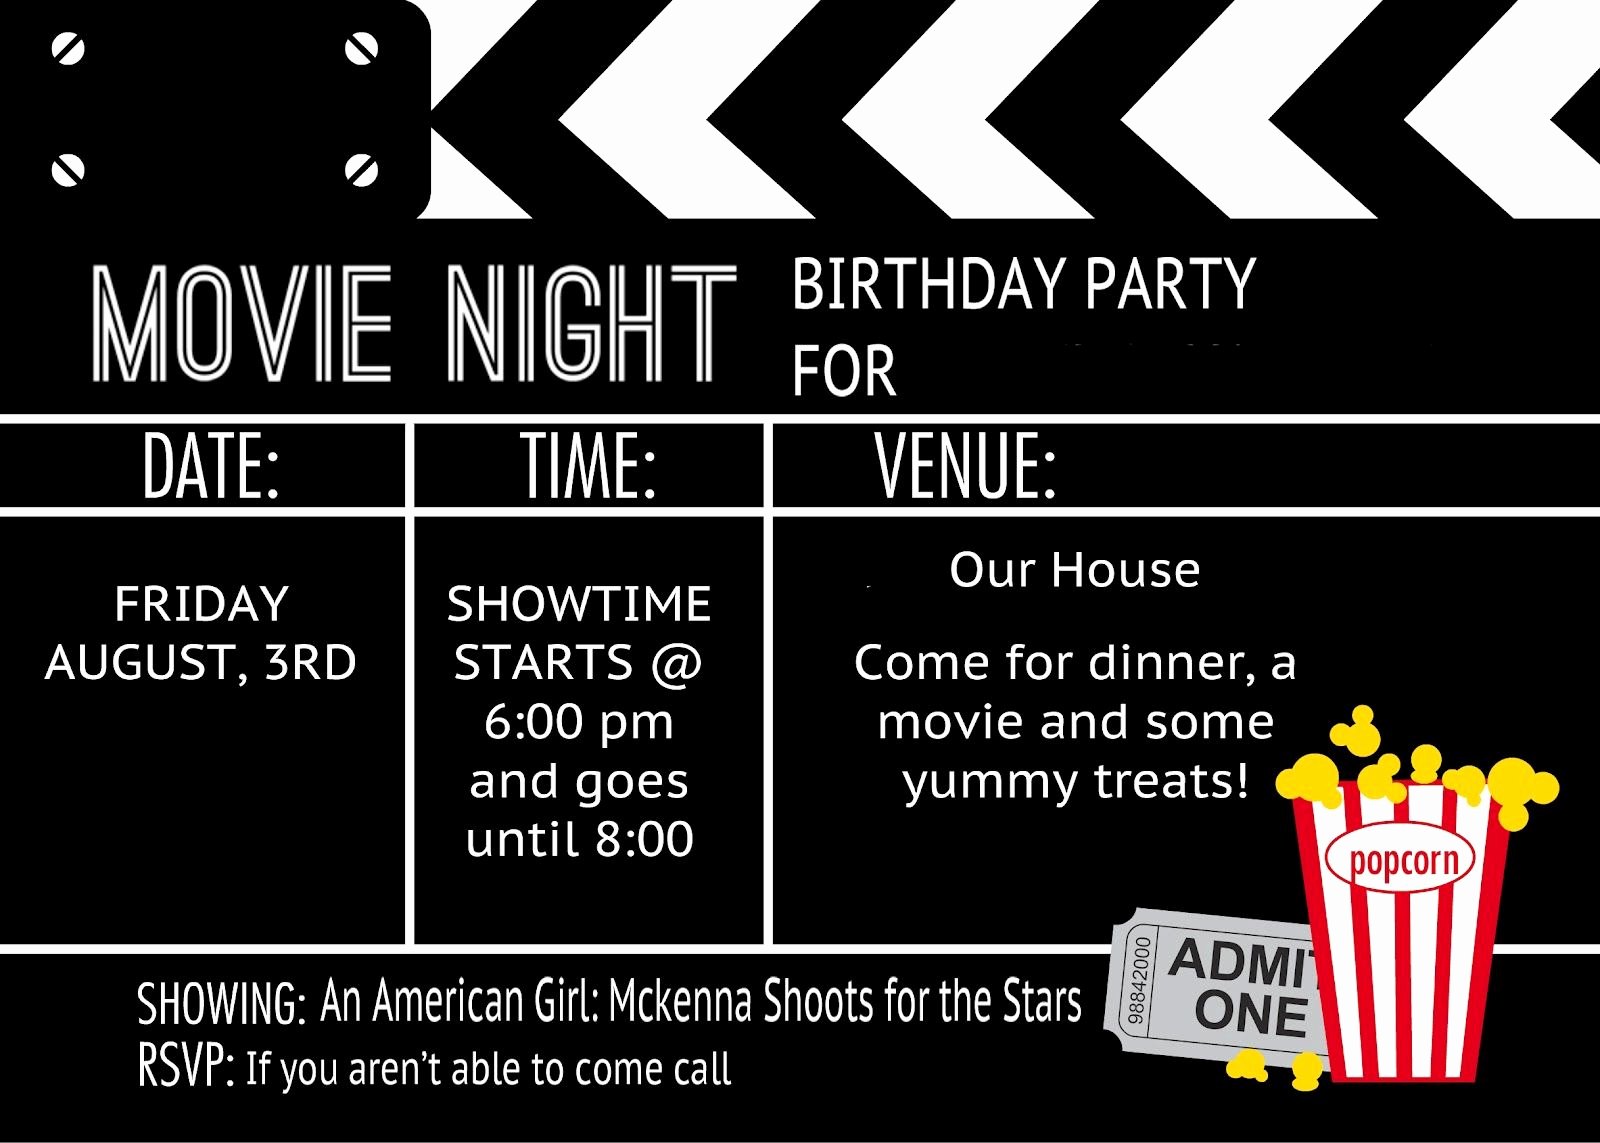 Movie Night Invitation Template Fresh Cool Black and White Movie themed Birthday Party